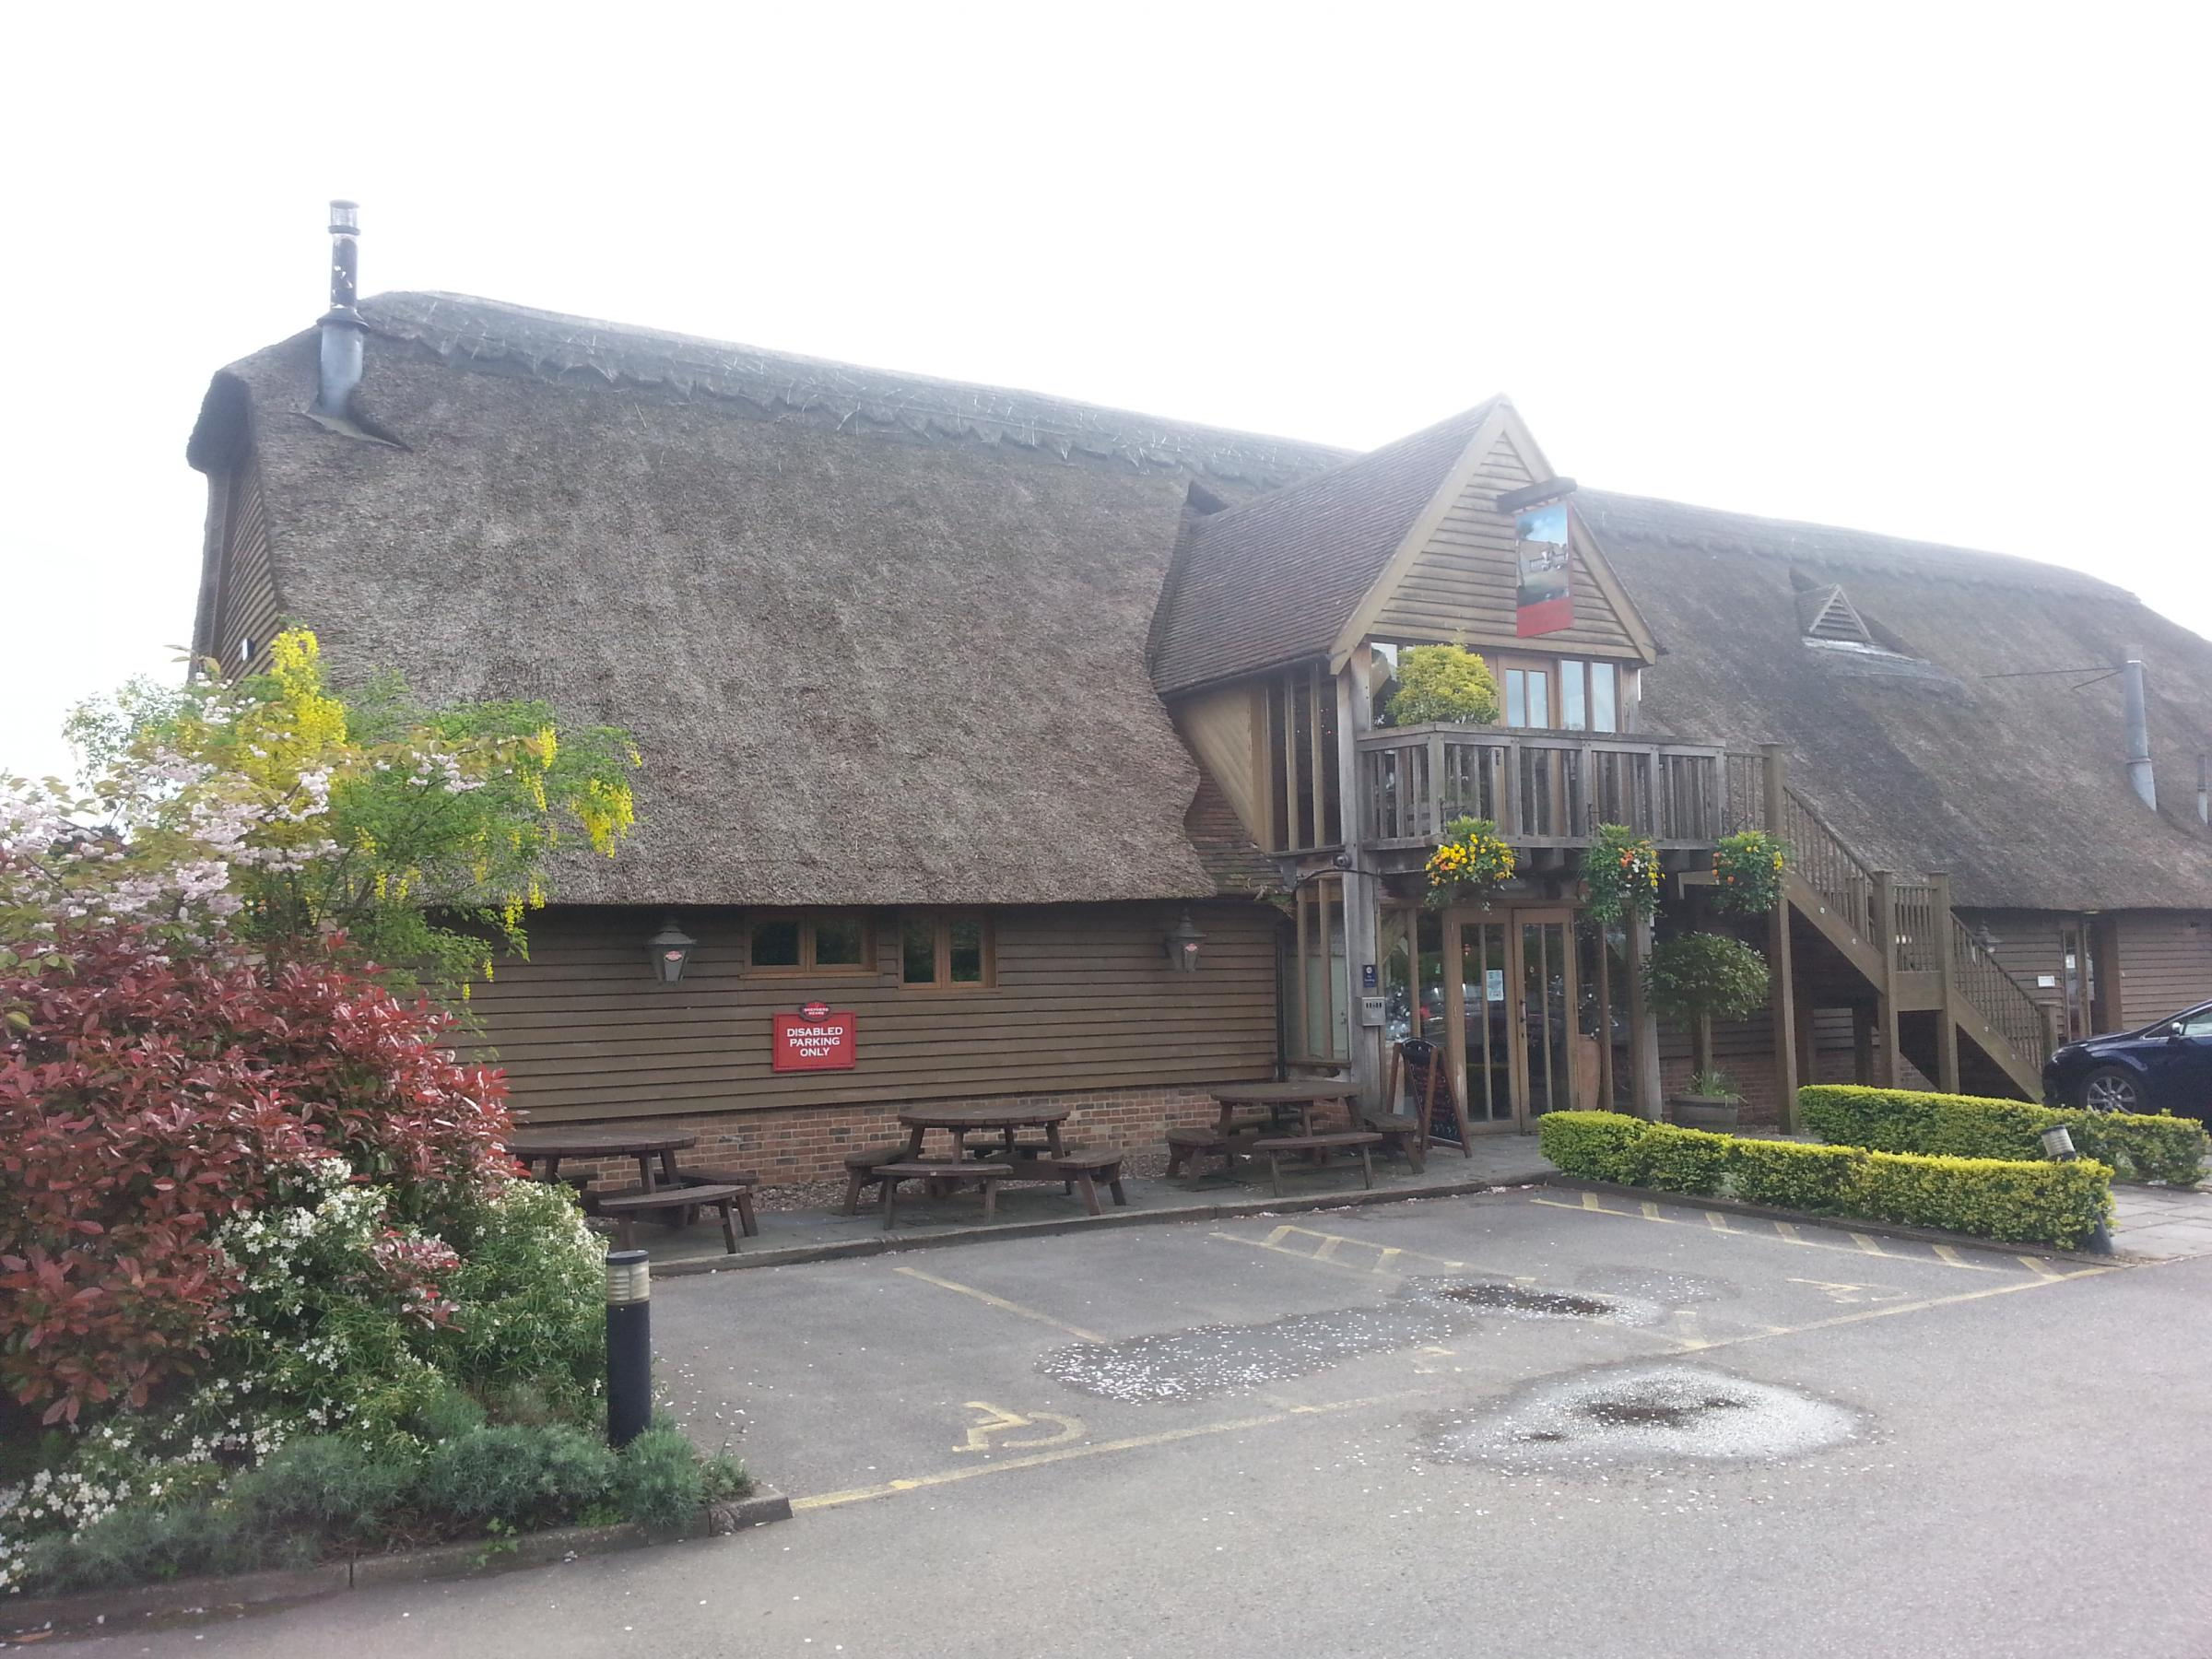 PubSpy finds a countryside idyll at the Manor Farm Barn in Southfleet